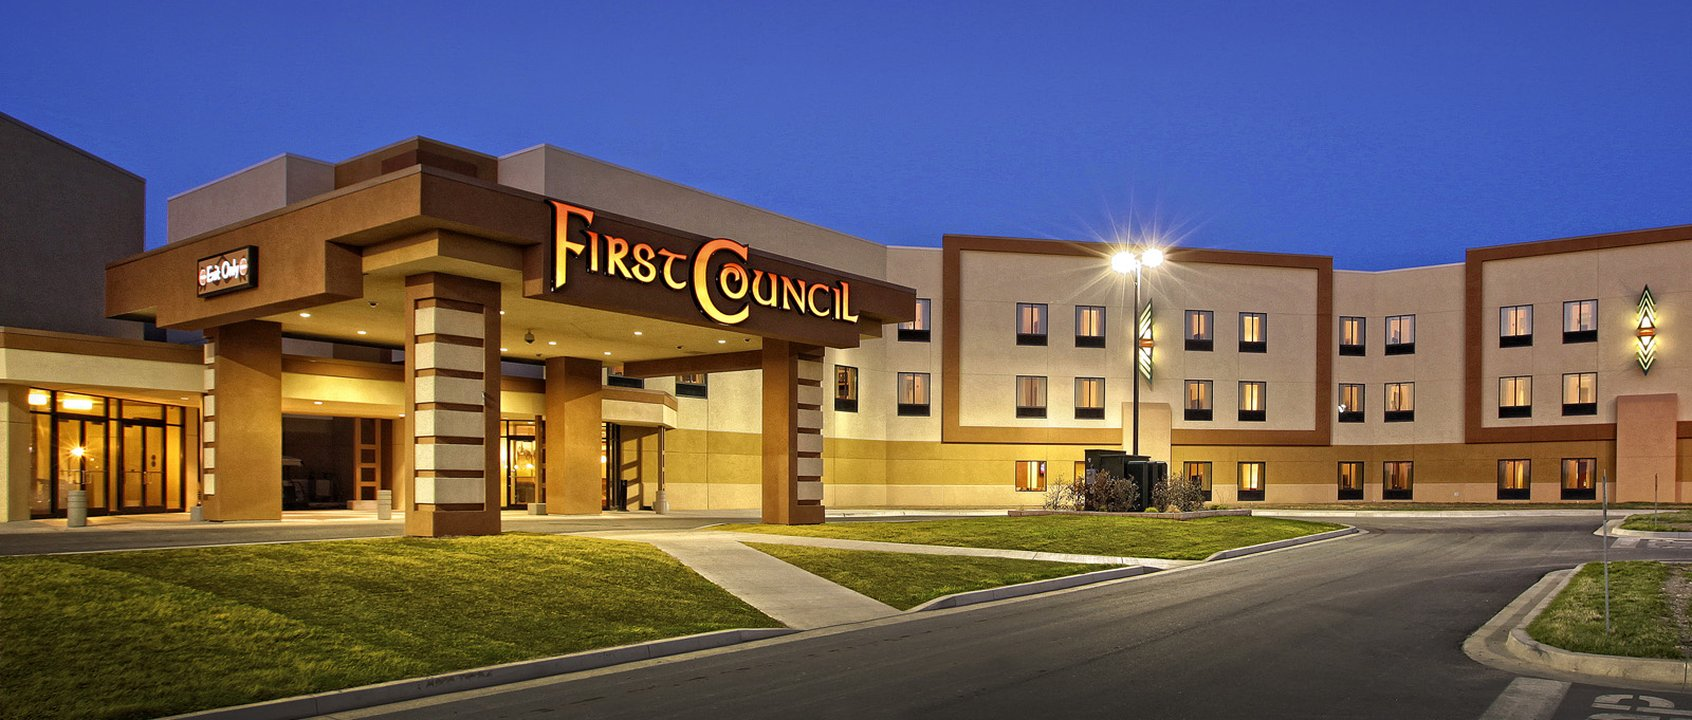 First council casino newkirk ok casino royal streaming video